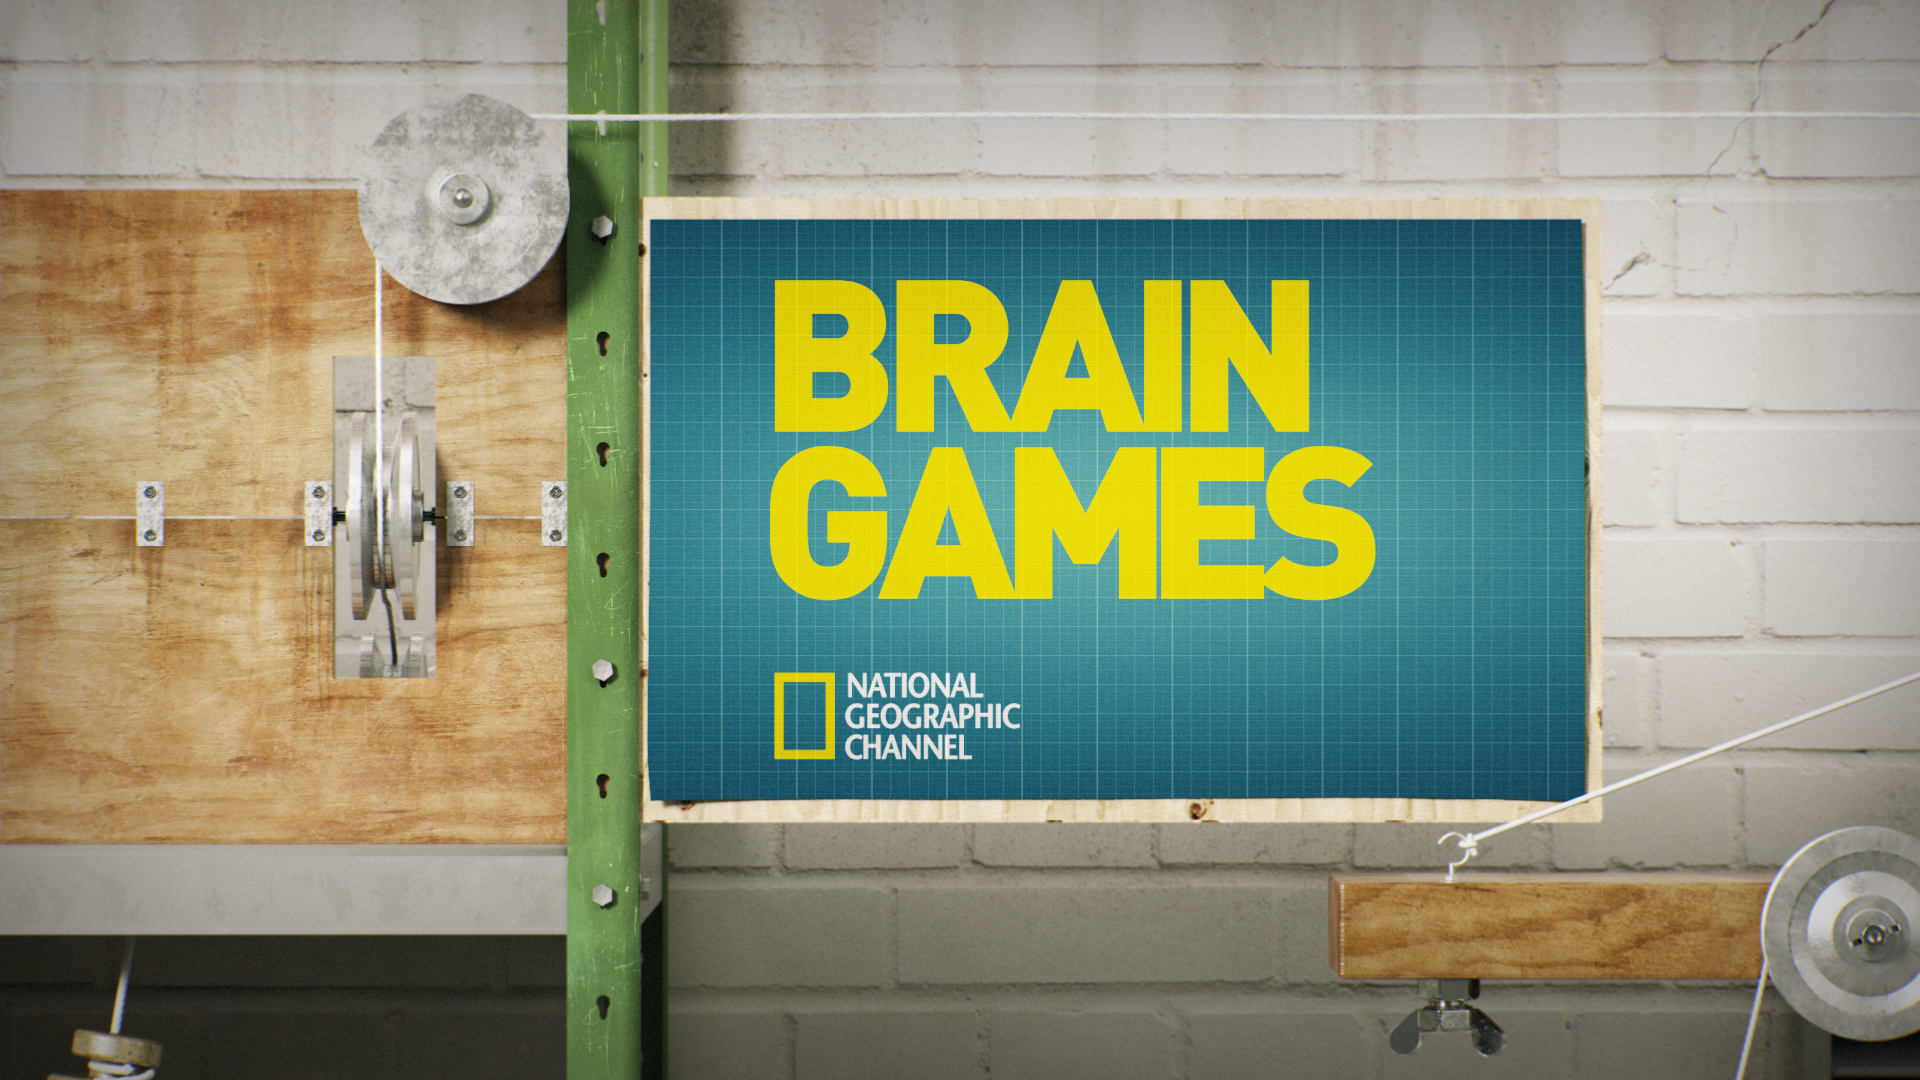 art direcciont and animation by javier bianchi for NatGeo brain games